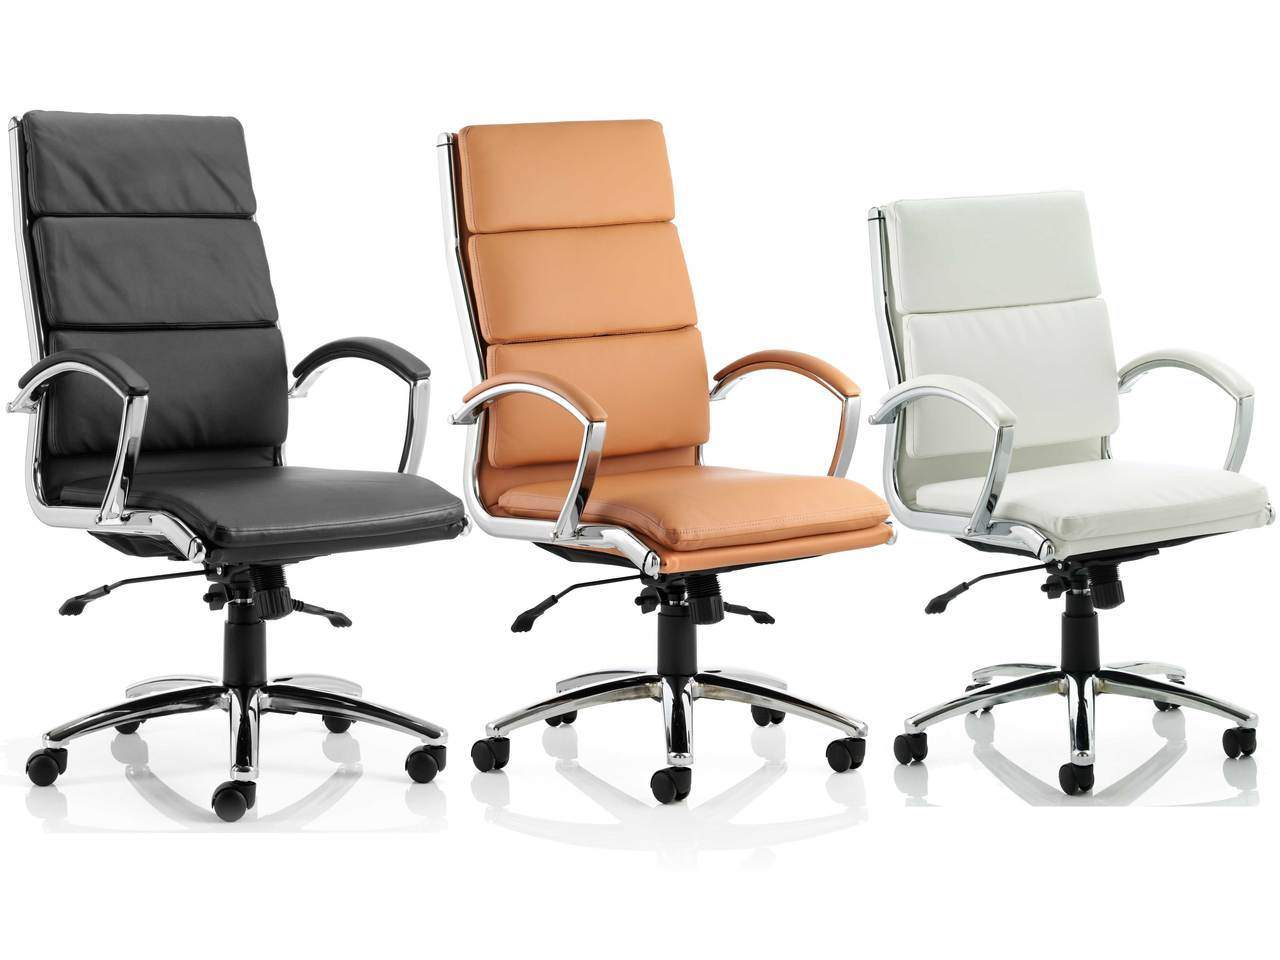 Clic Medium And High Back Leather Executive Office Chair In Tan Black Or White